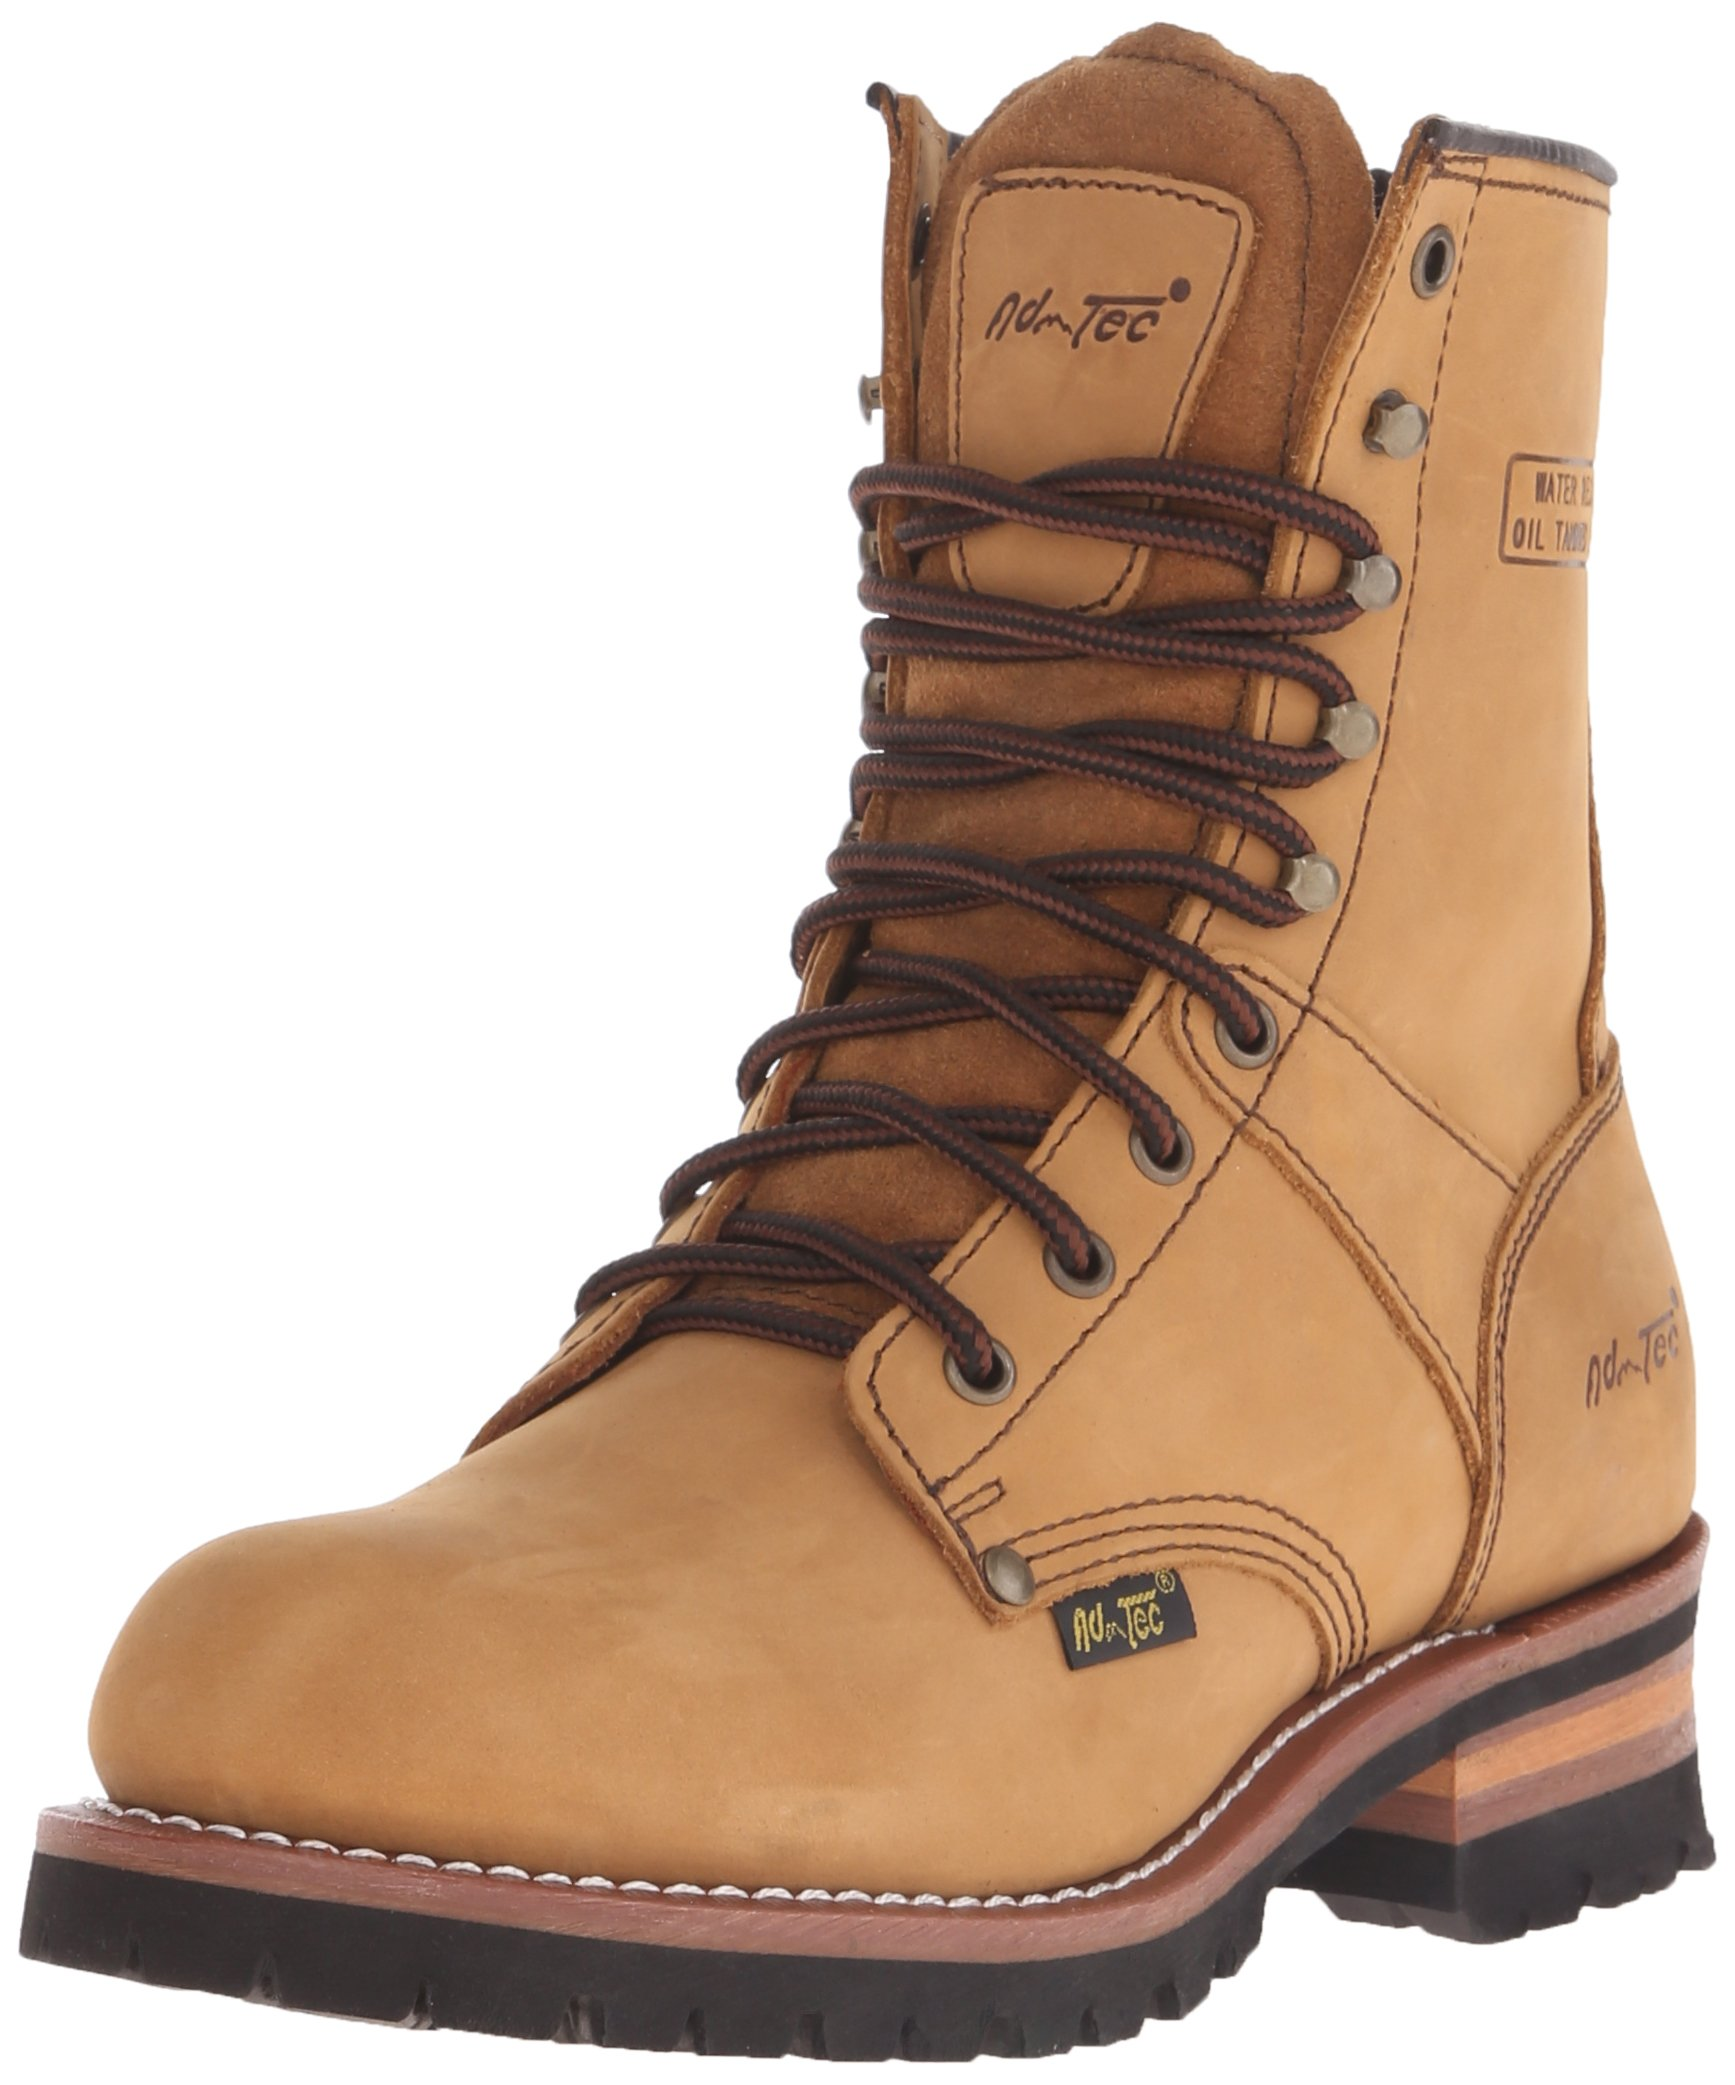 Adtec Men's 9 inch Logger Boot, Brown, 9.5 M US